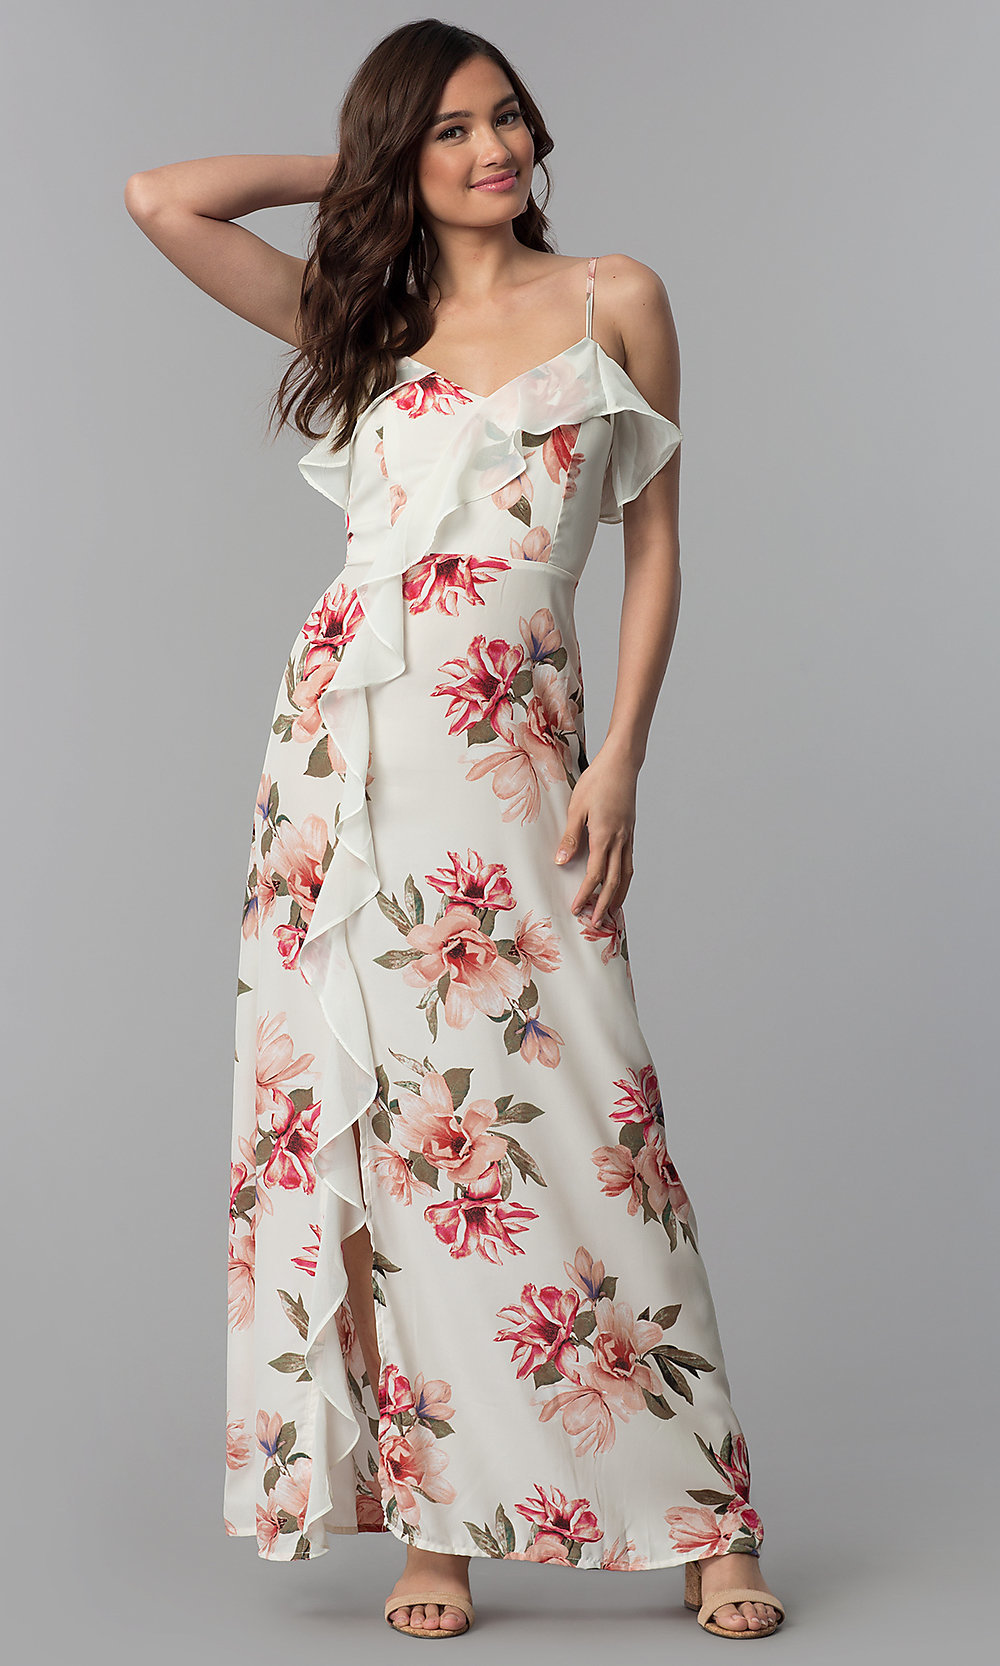 2373ffcf081a ... floral-print long casual wedding-guest dress. Style  VJ. Tap to expand